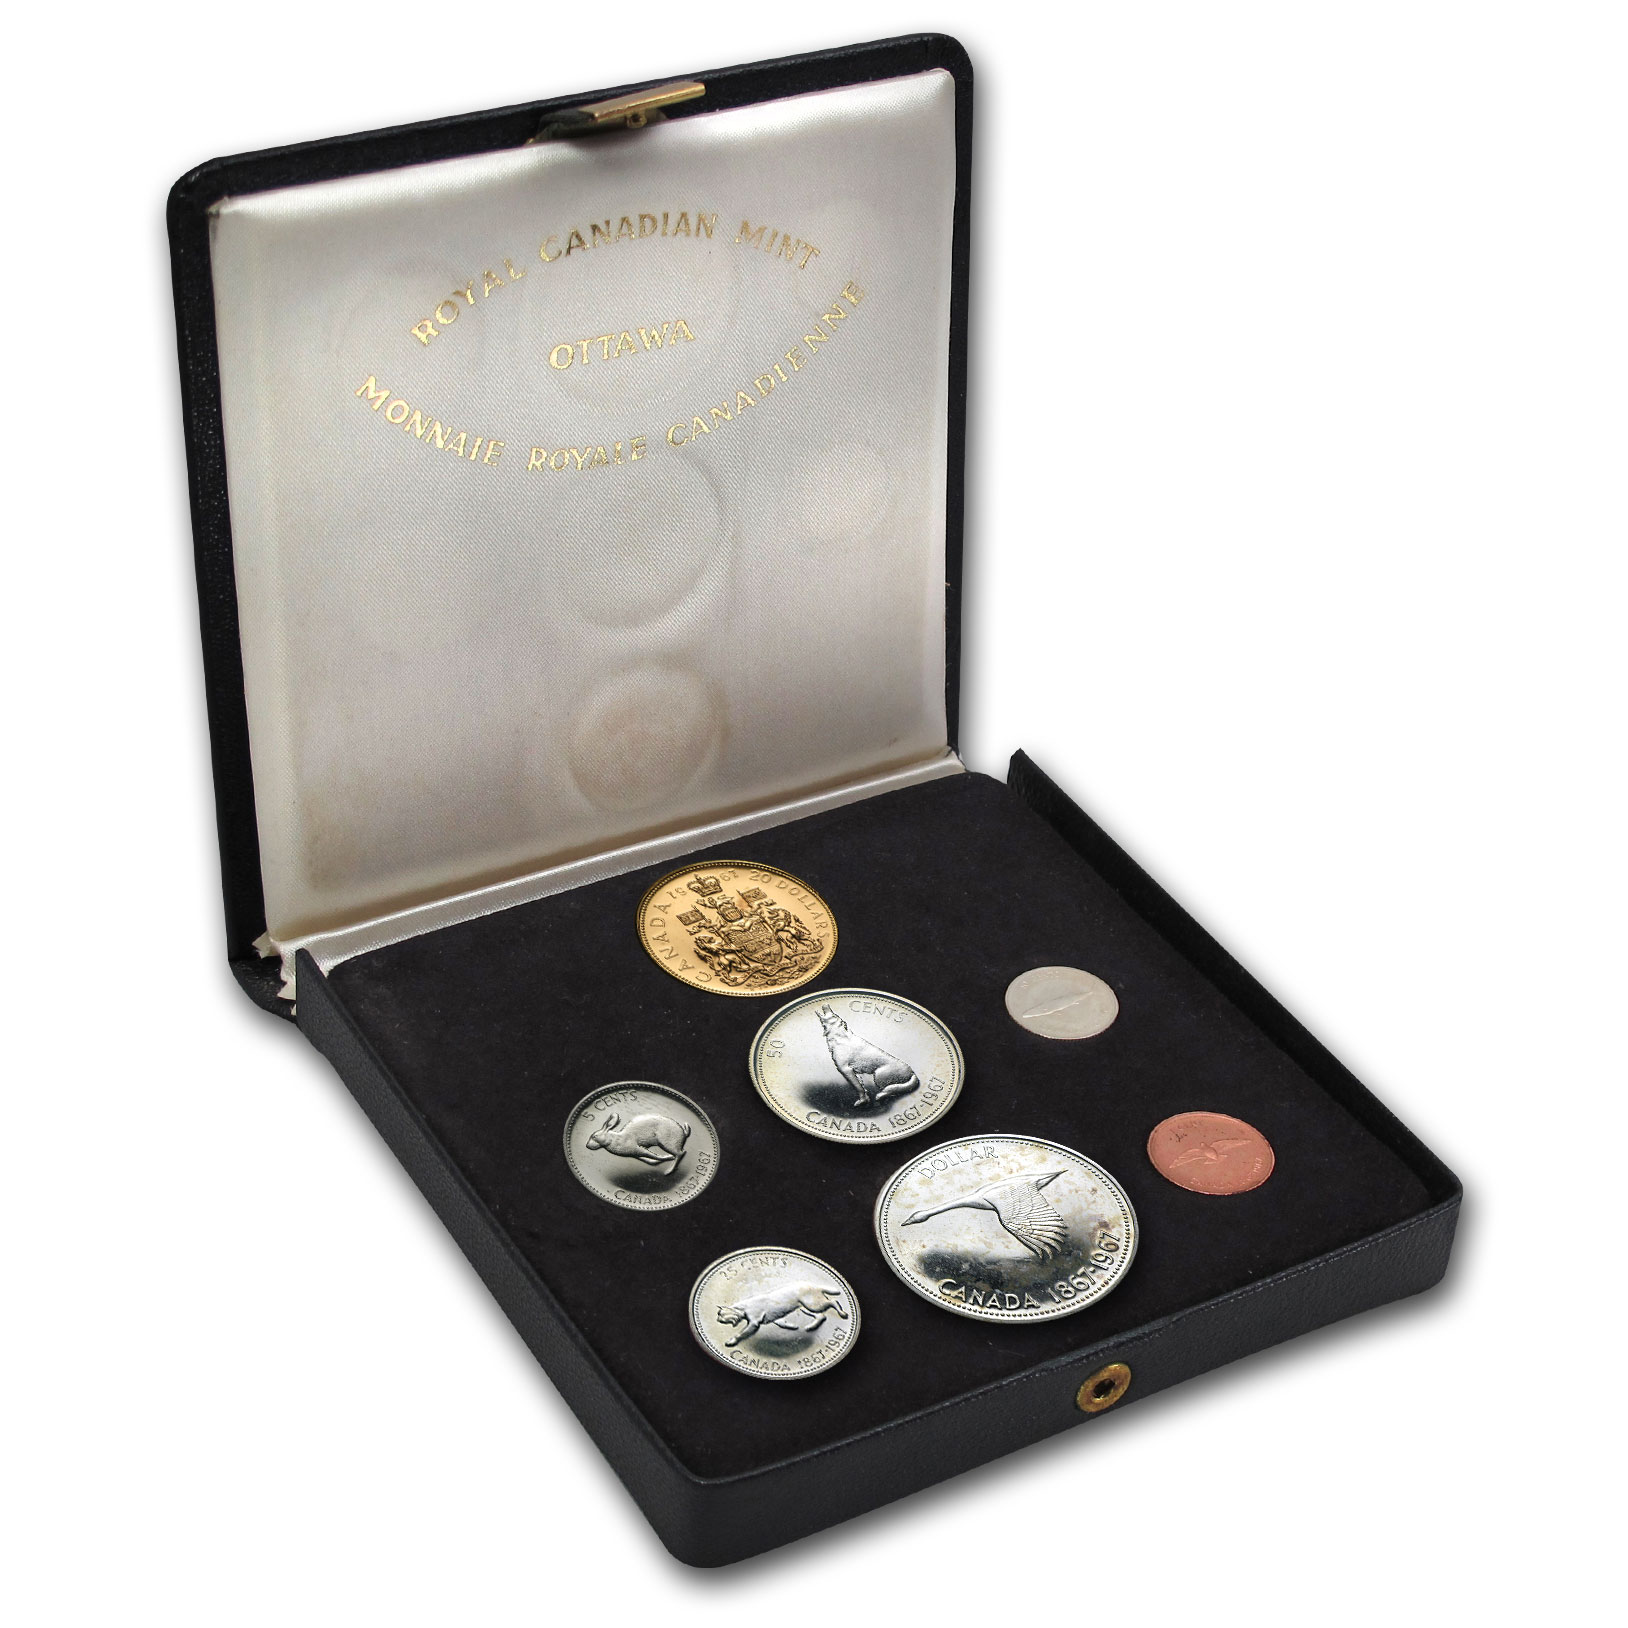 Canada 1967 Centennial 7-Coin Proof Set w/ $20 Gold (some toning)